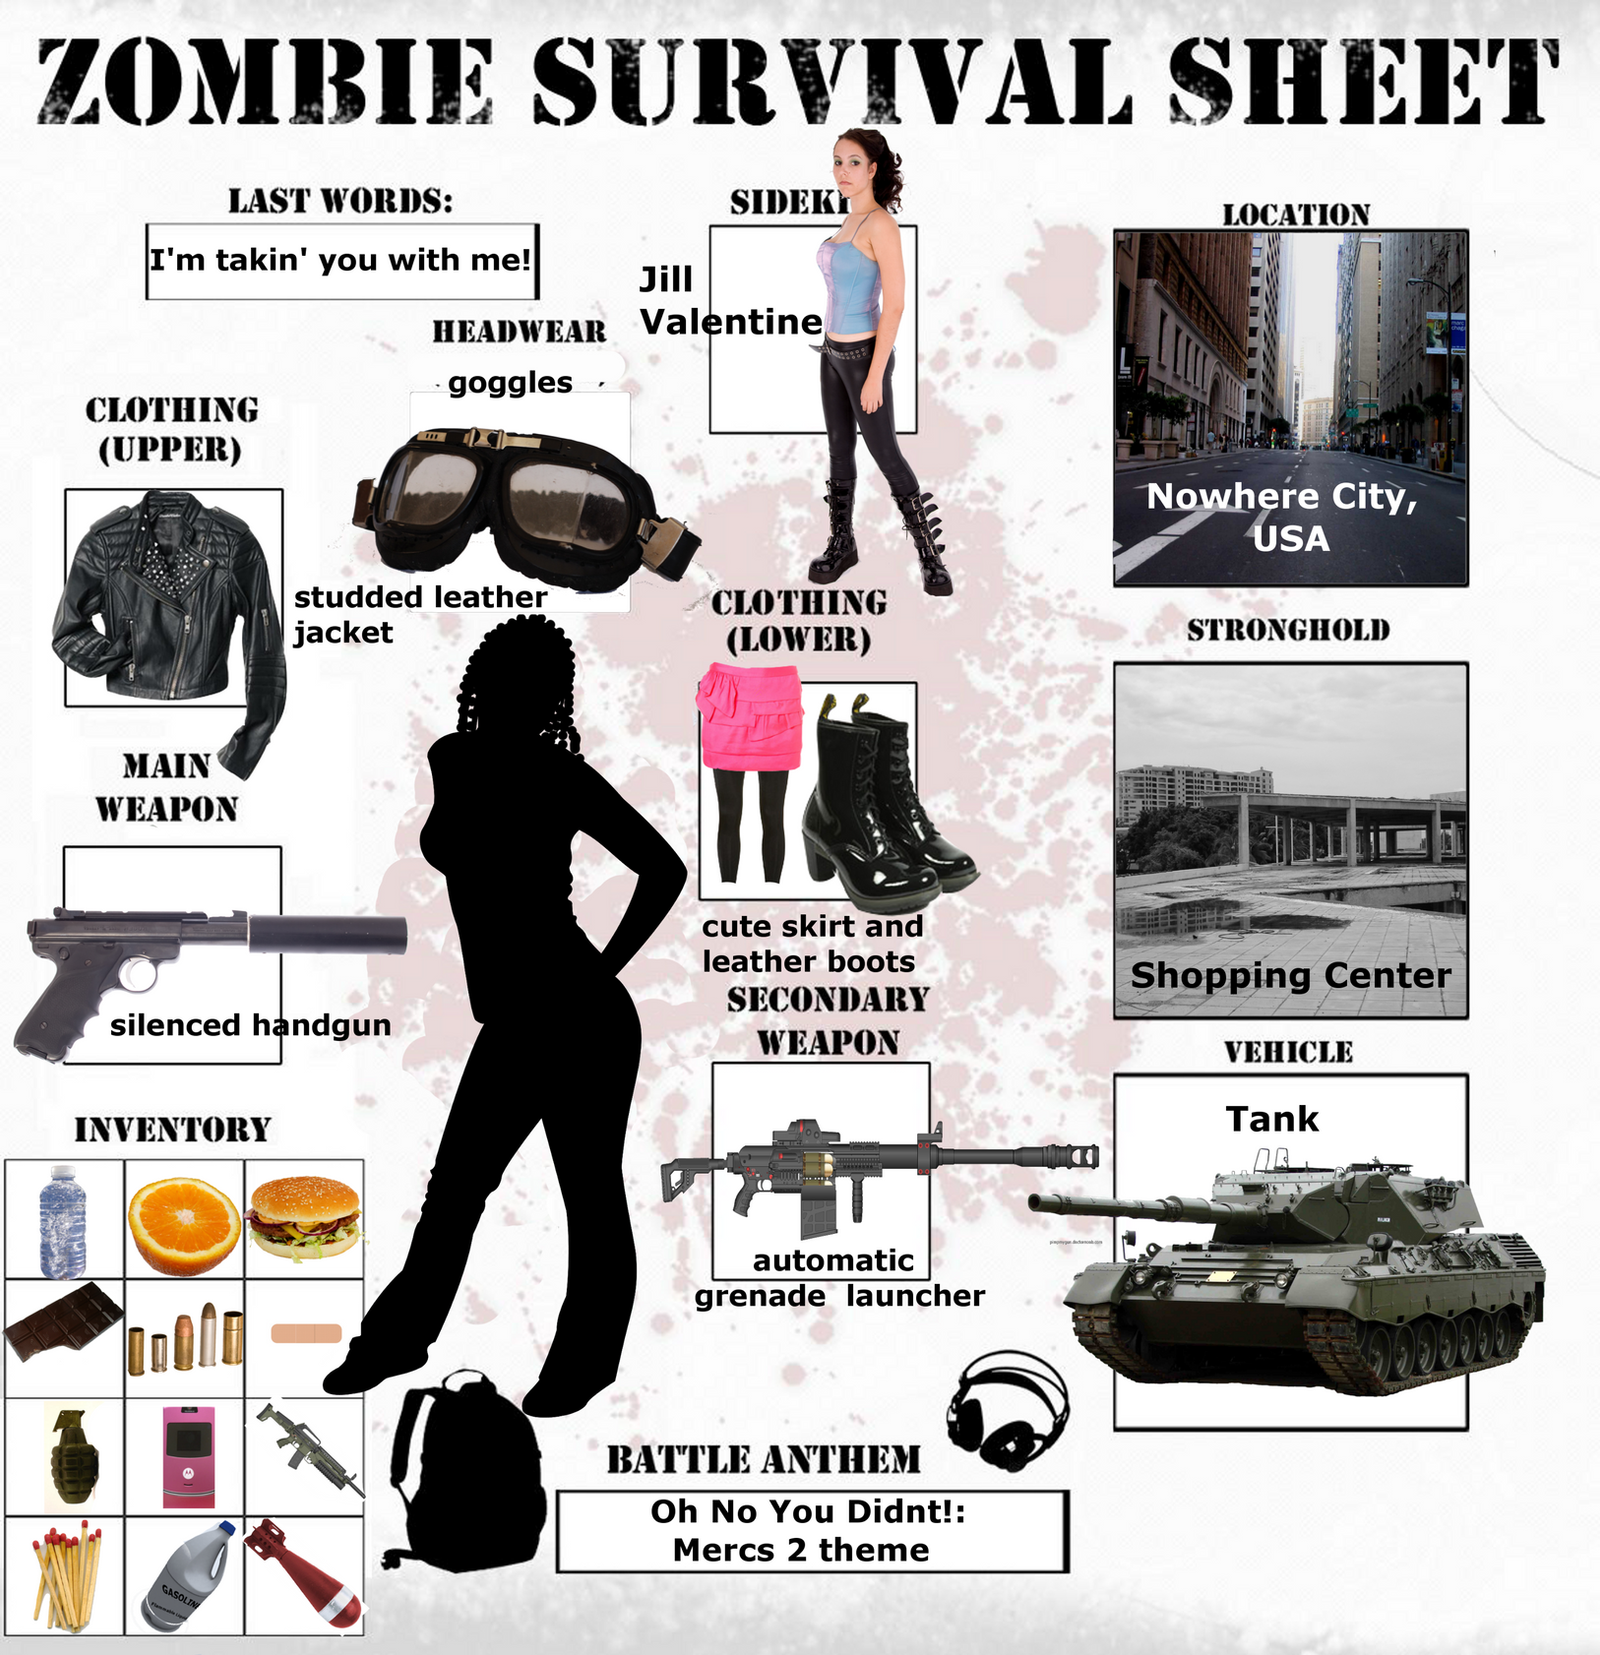 Zombie survival supply list